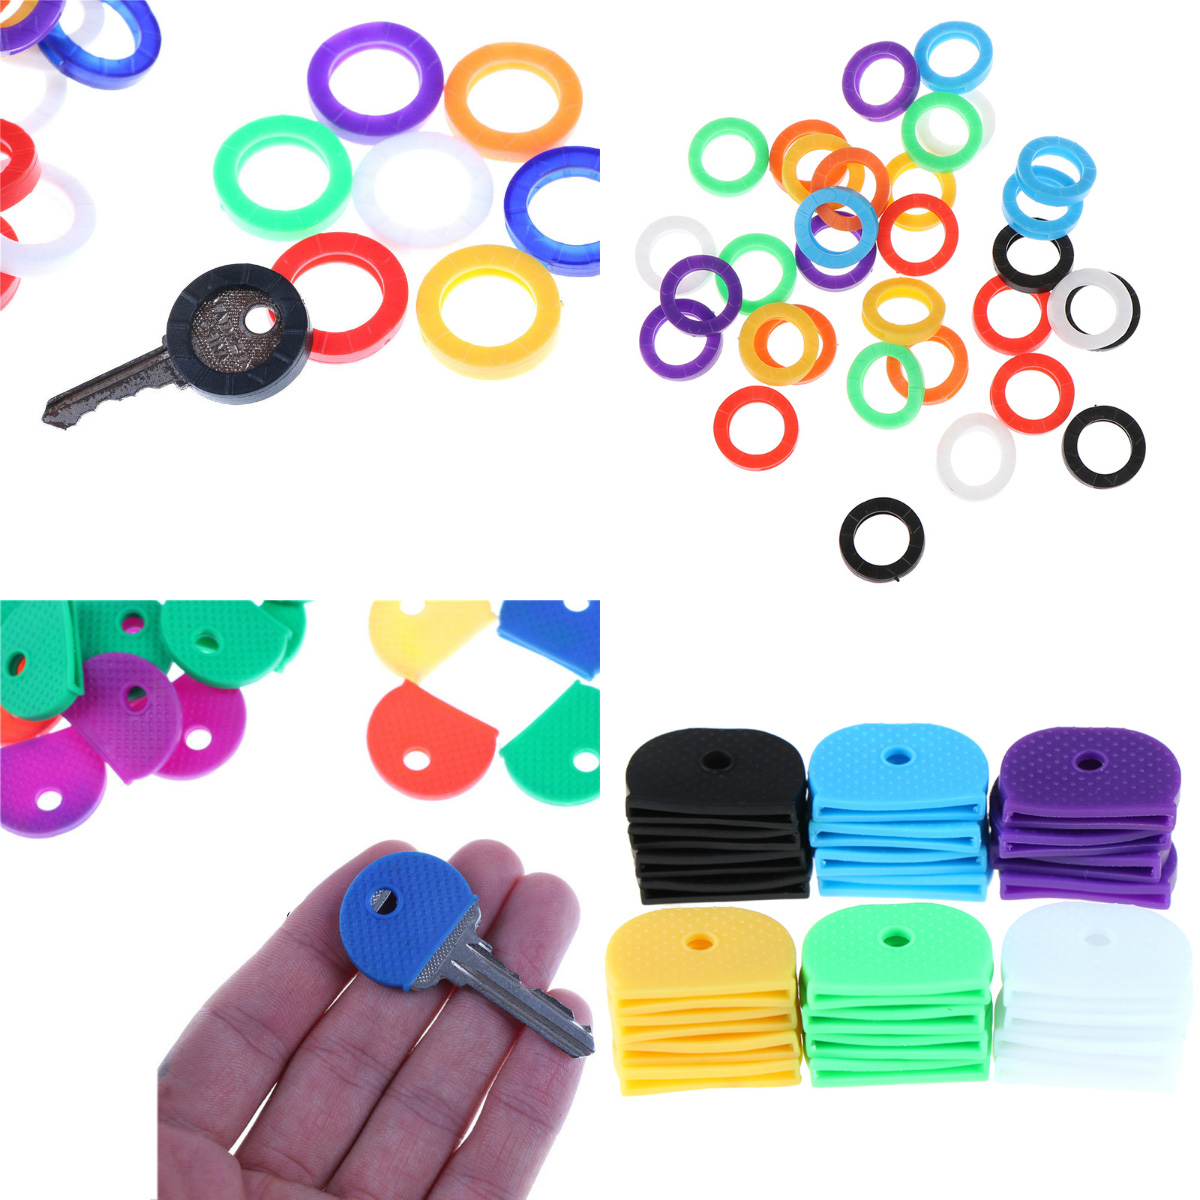 24/32Pcs Colorful Key Top Covers Head/Caps/Tags/ID Markers Mixed Toppers Keyring Accessories